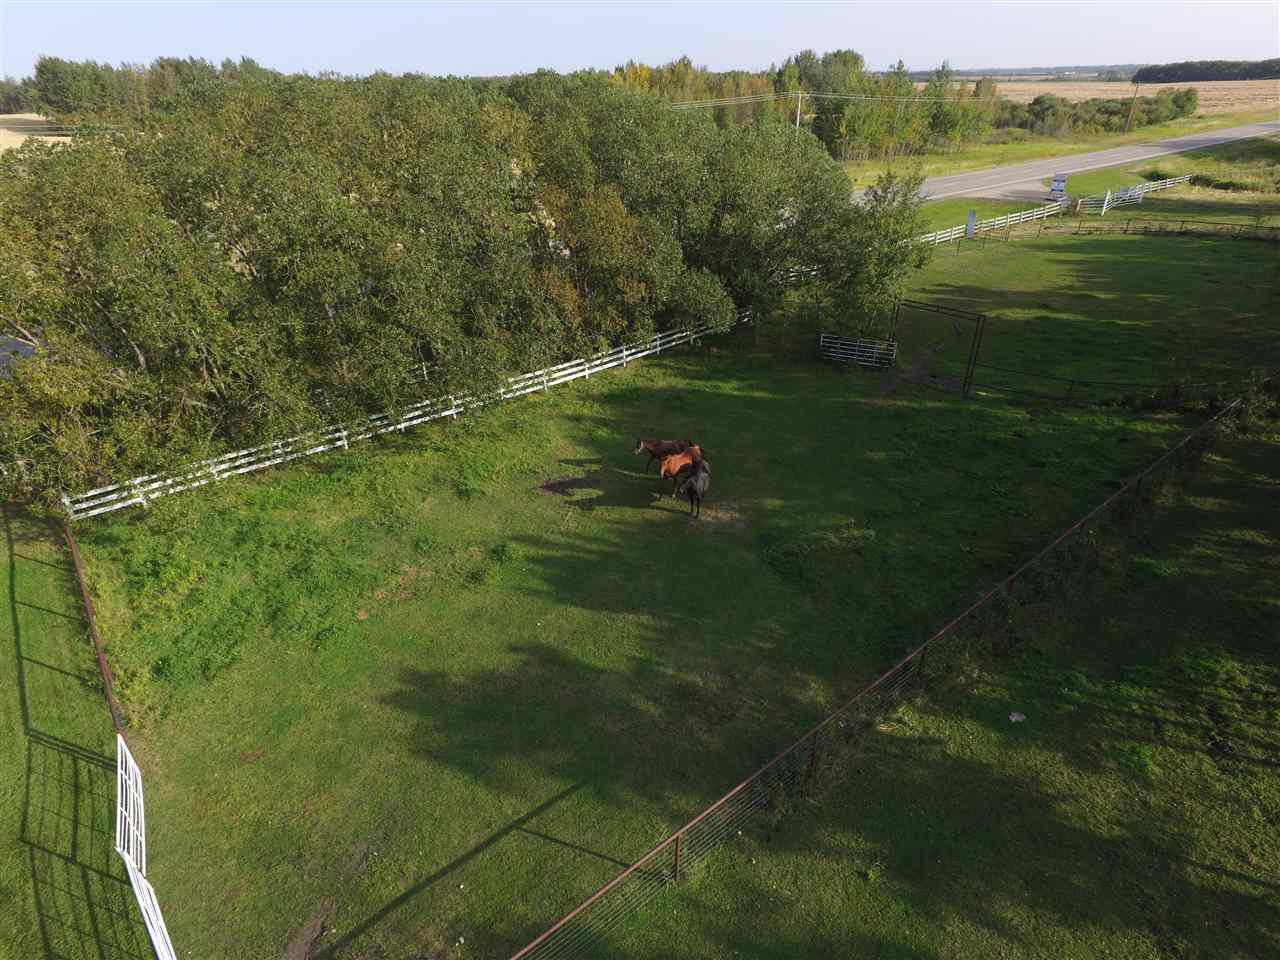 Photo 37: Photos: 472050A Hwy 814: Rural Wetaskiwin County House for sale : MLS®# E4213442